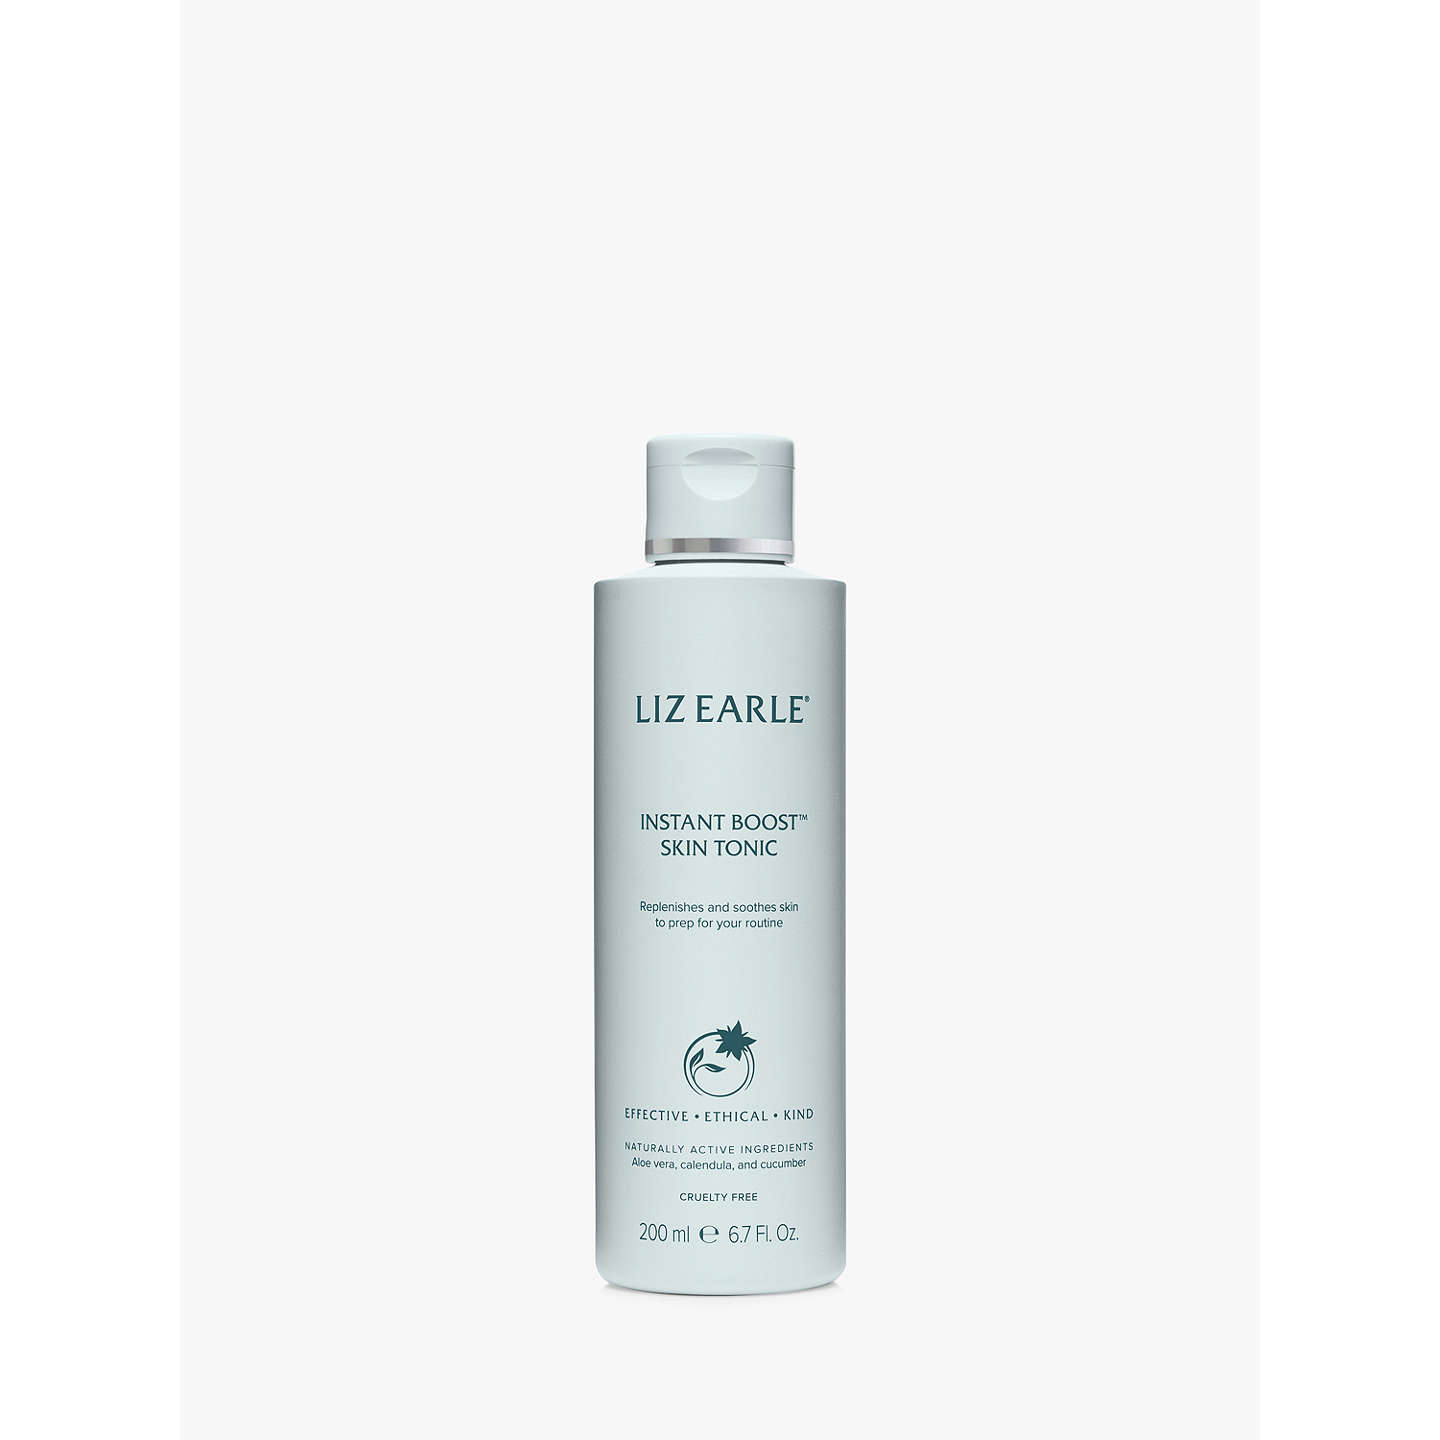 BuyLiz Earle Instant Boost™ Skin Tonic, 200ml Online at johnlewis.com